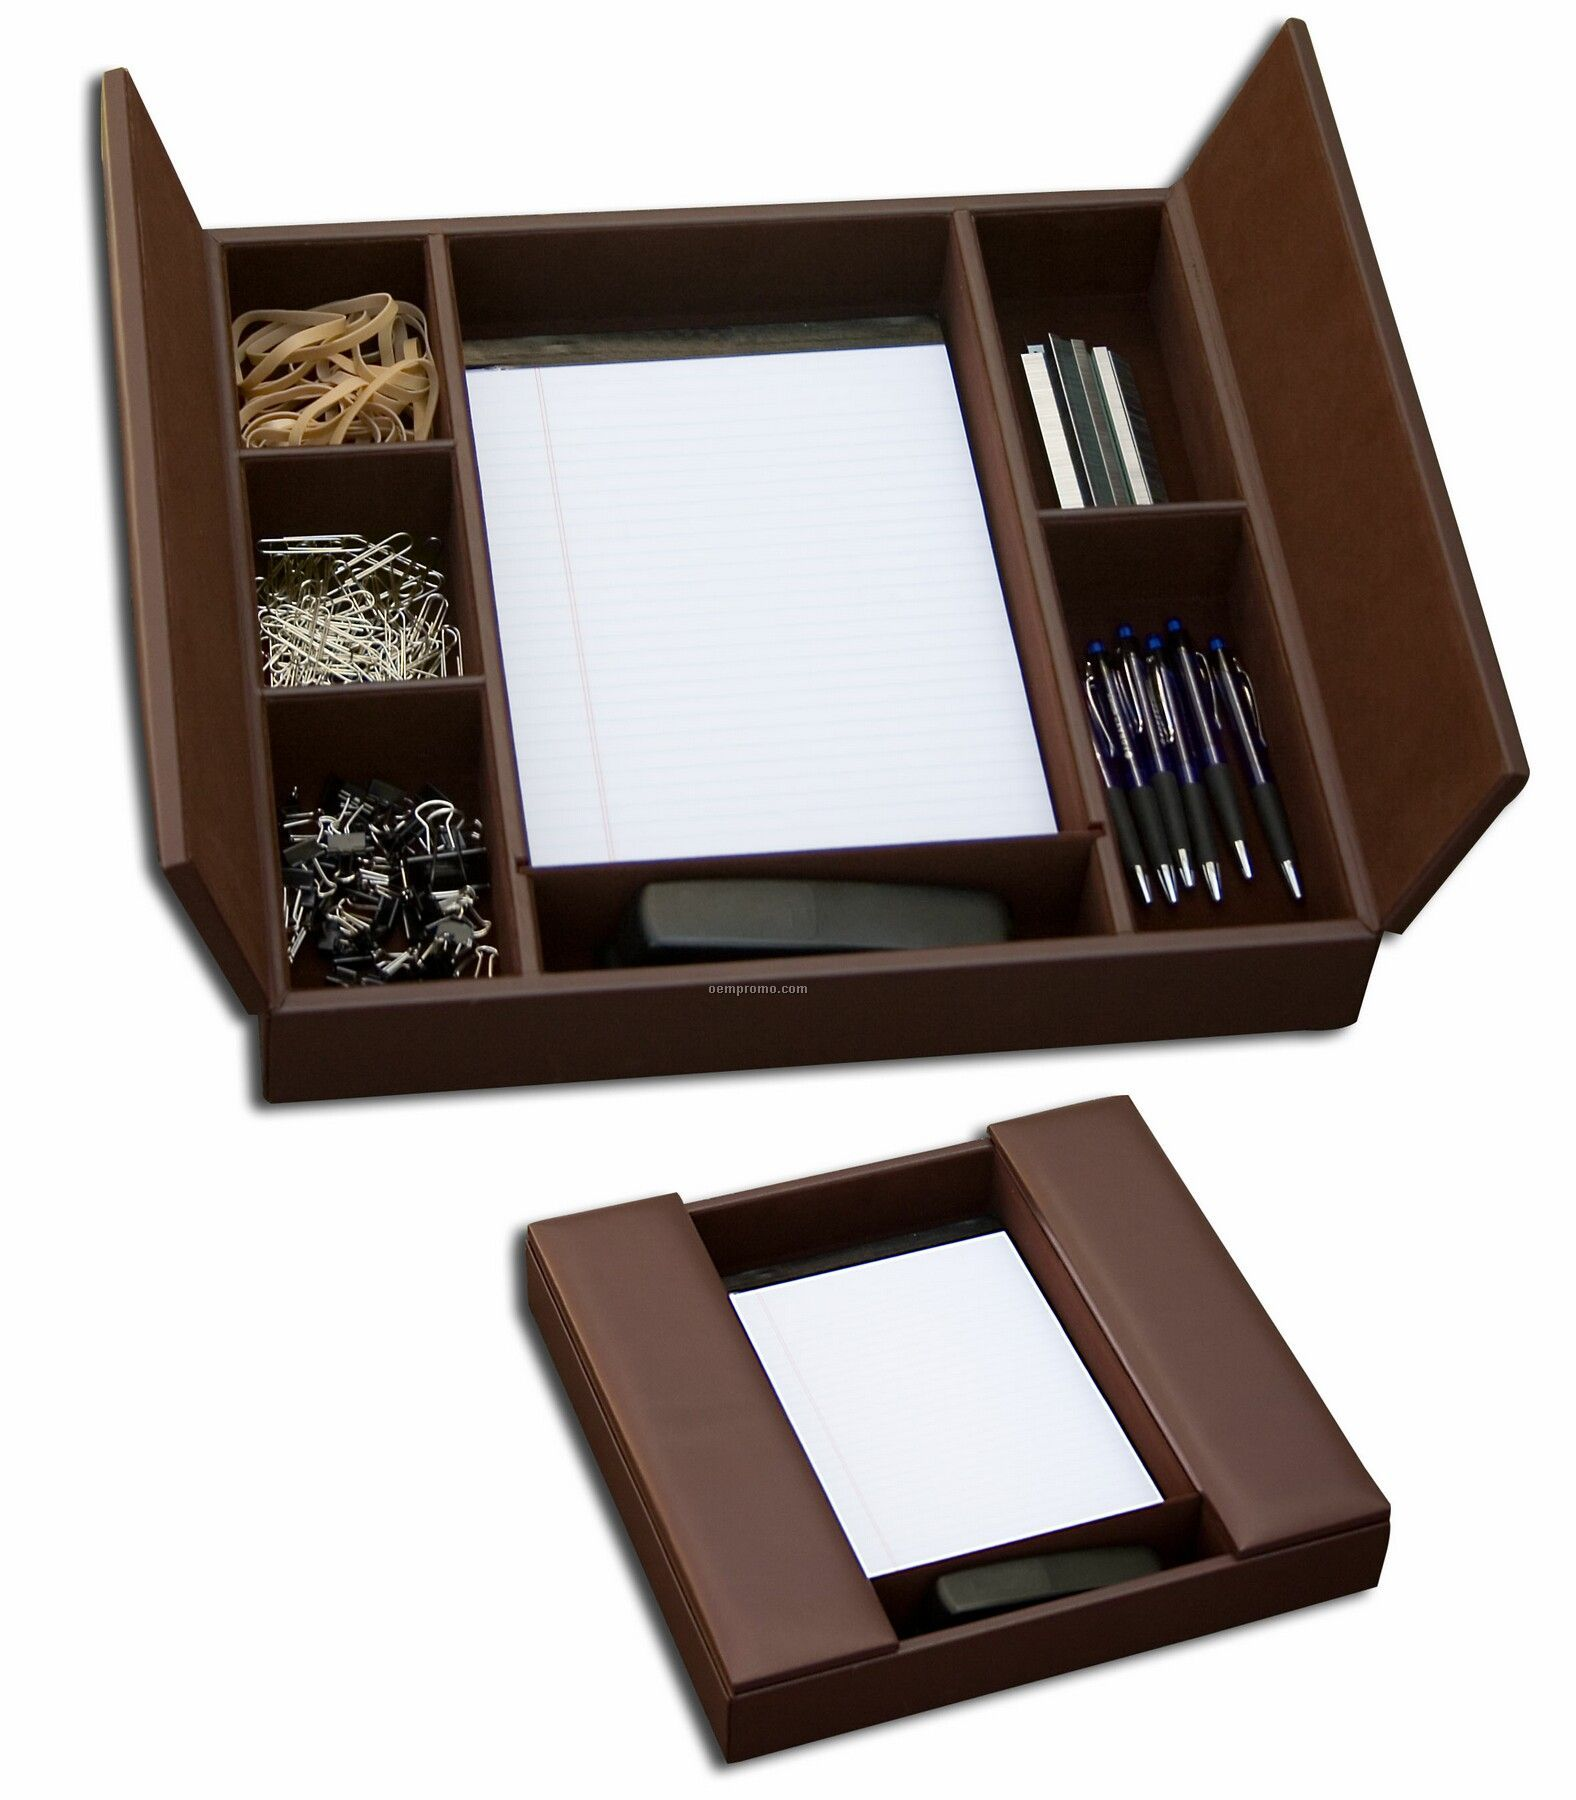 Classic Leather Enhanced Conference Room Organizer - Chocolate Brown